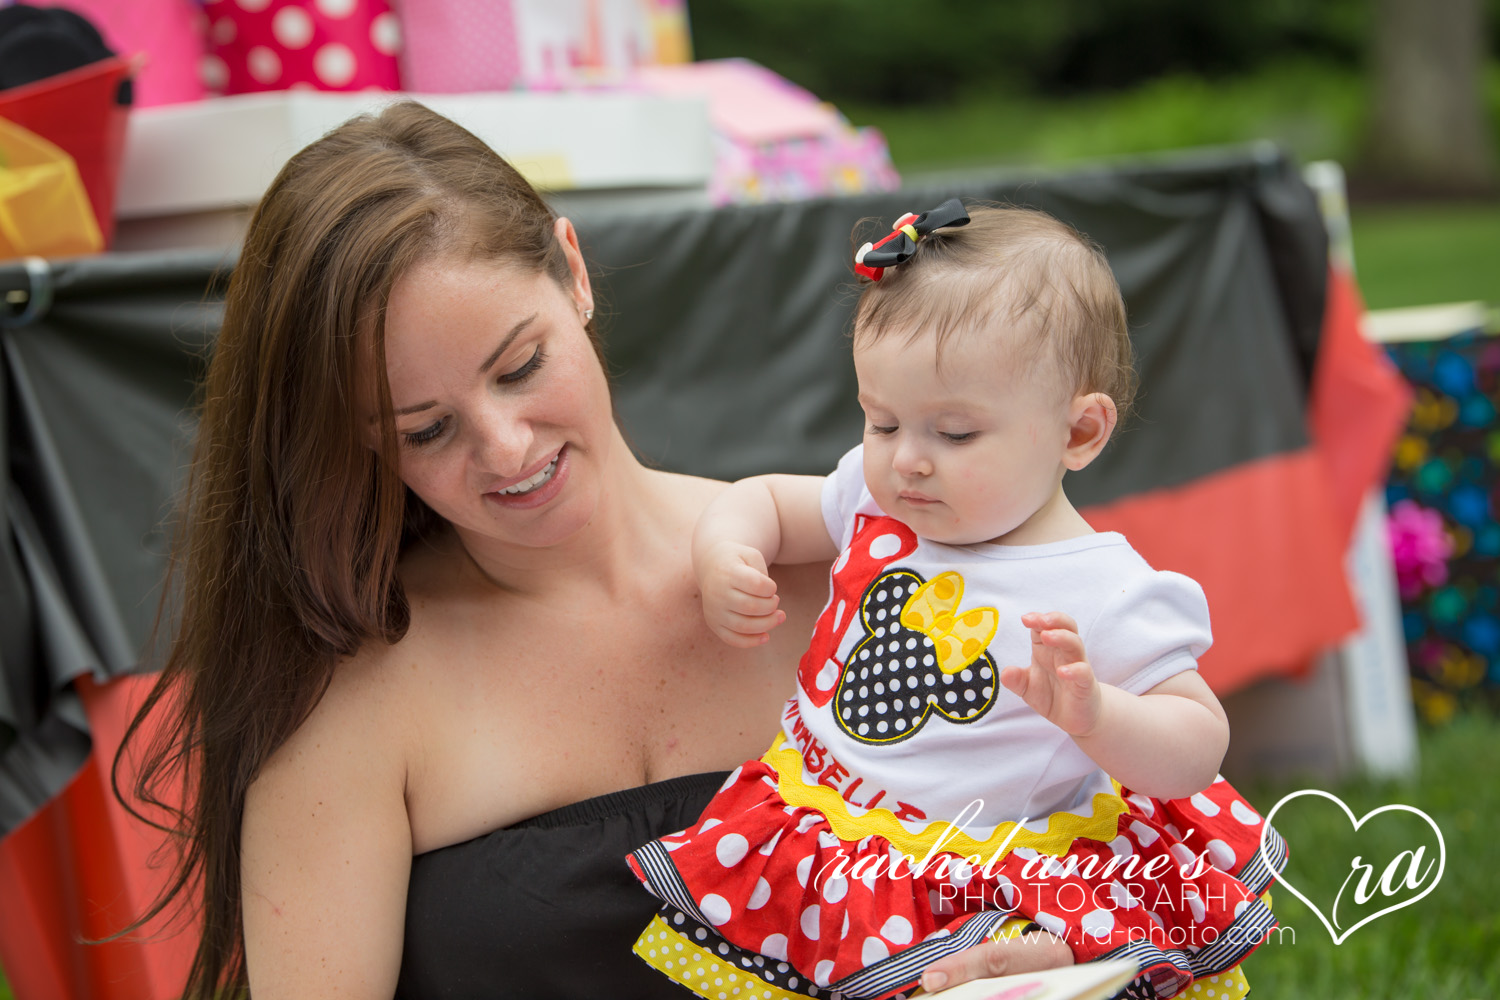 027-CESA-FIRST-BIRTHDAY-PARTY-PHOTOGRAPHY.jpg